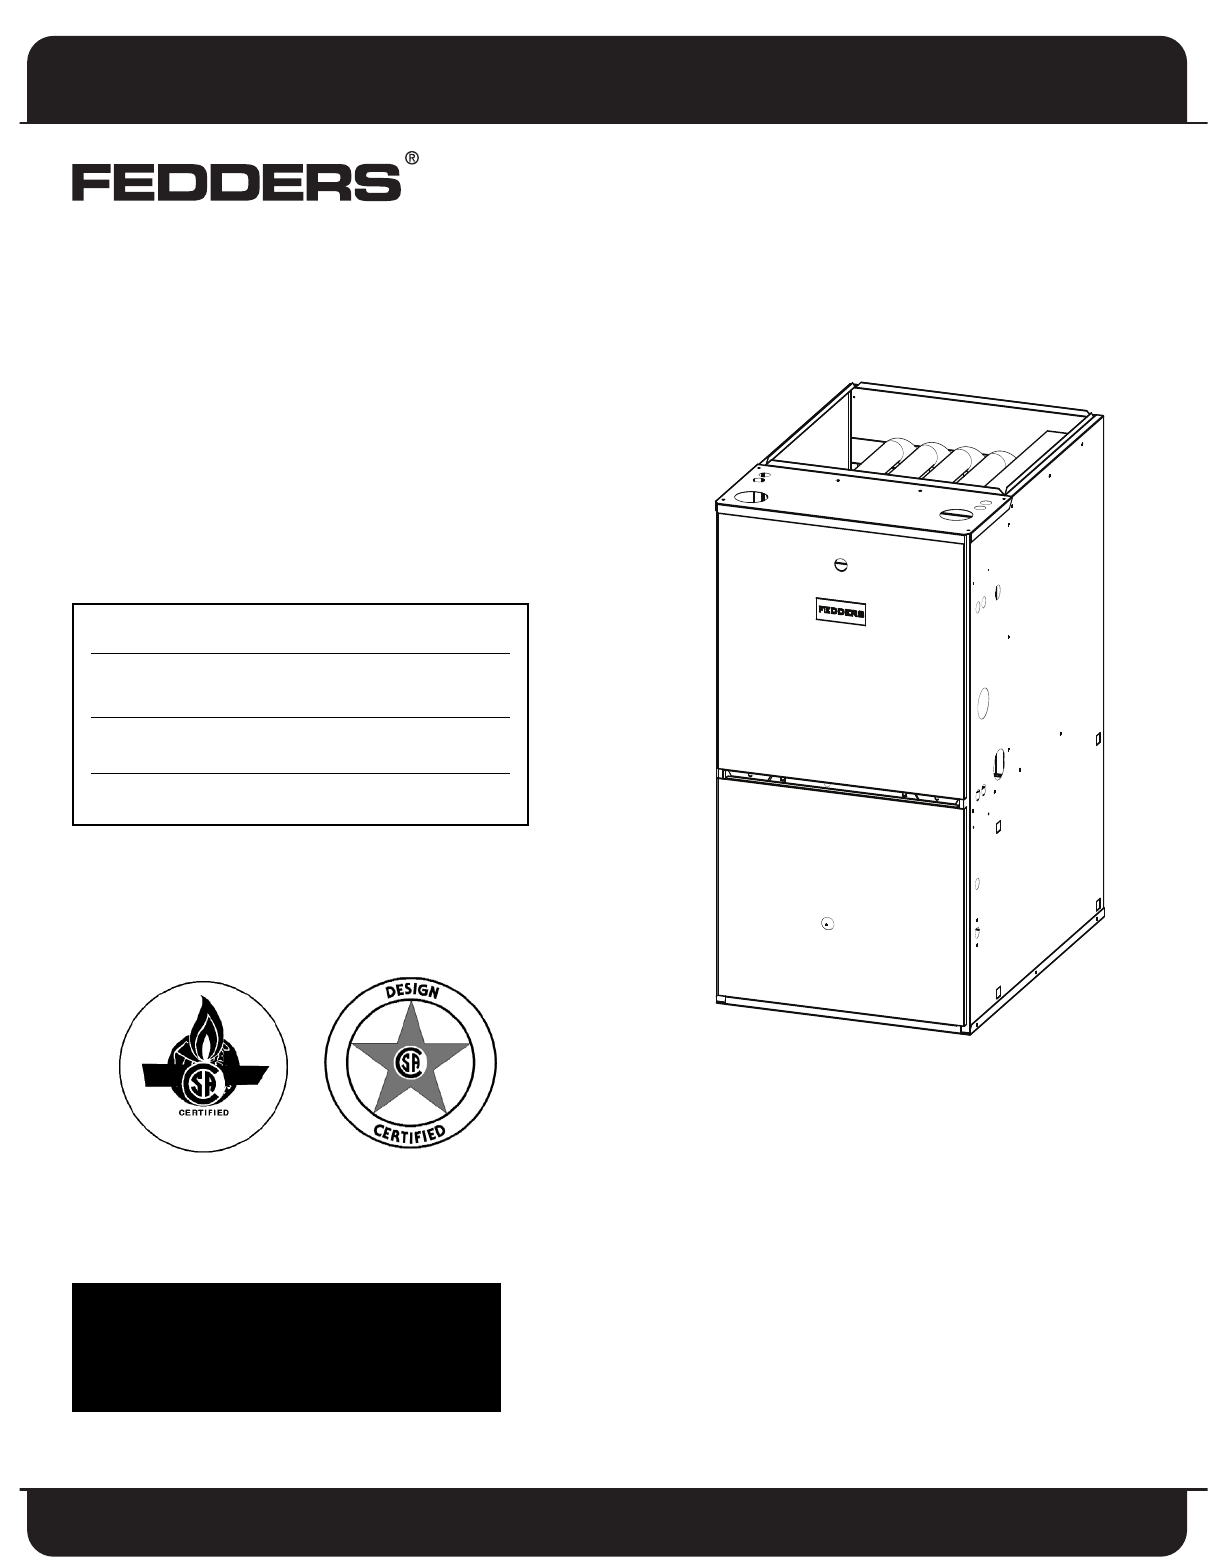 [SCHEMATICS_4ER]  Fedders Fv95A072 Users Manual | Fedders Thermostat Wiring Diagram |  | UserManual.wiki